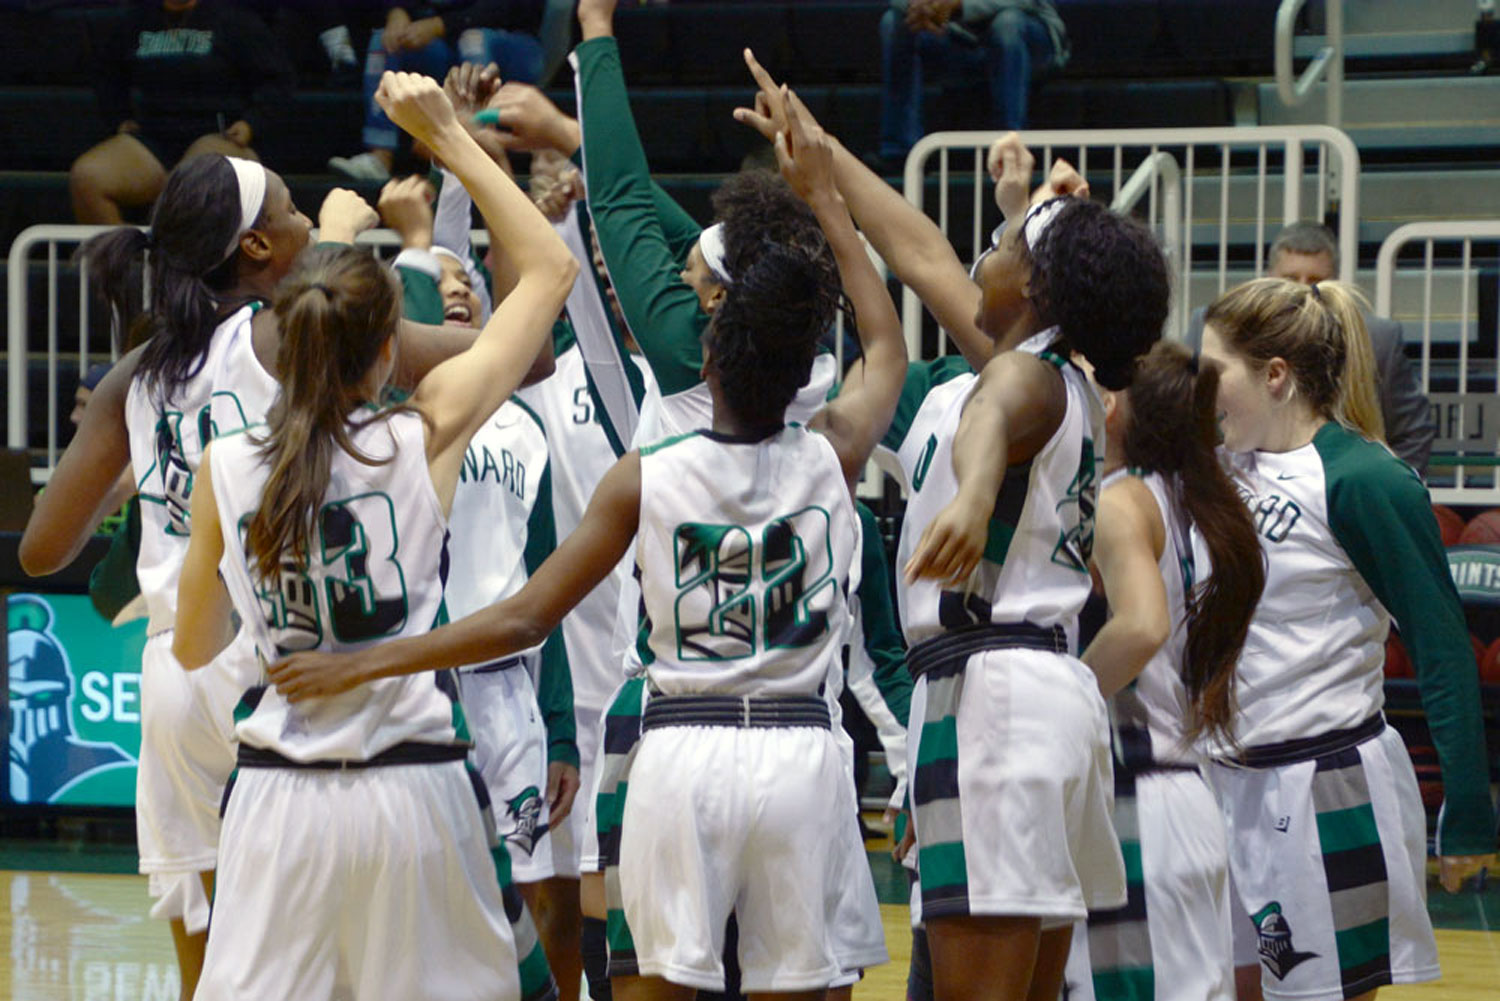 The Lady Saints defeated the No. 10 Western Nebraska Cougars on Nov. 2 at 6 p.m. in the Greenhouse. Seward finished with a win, 74-64 .